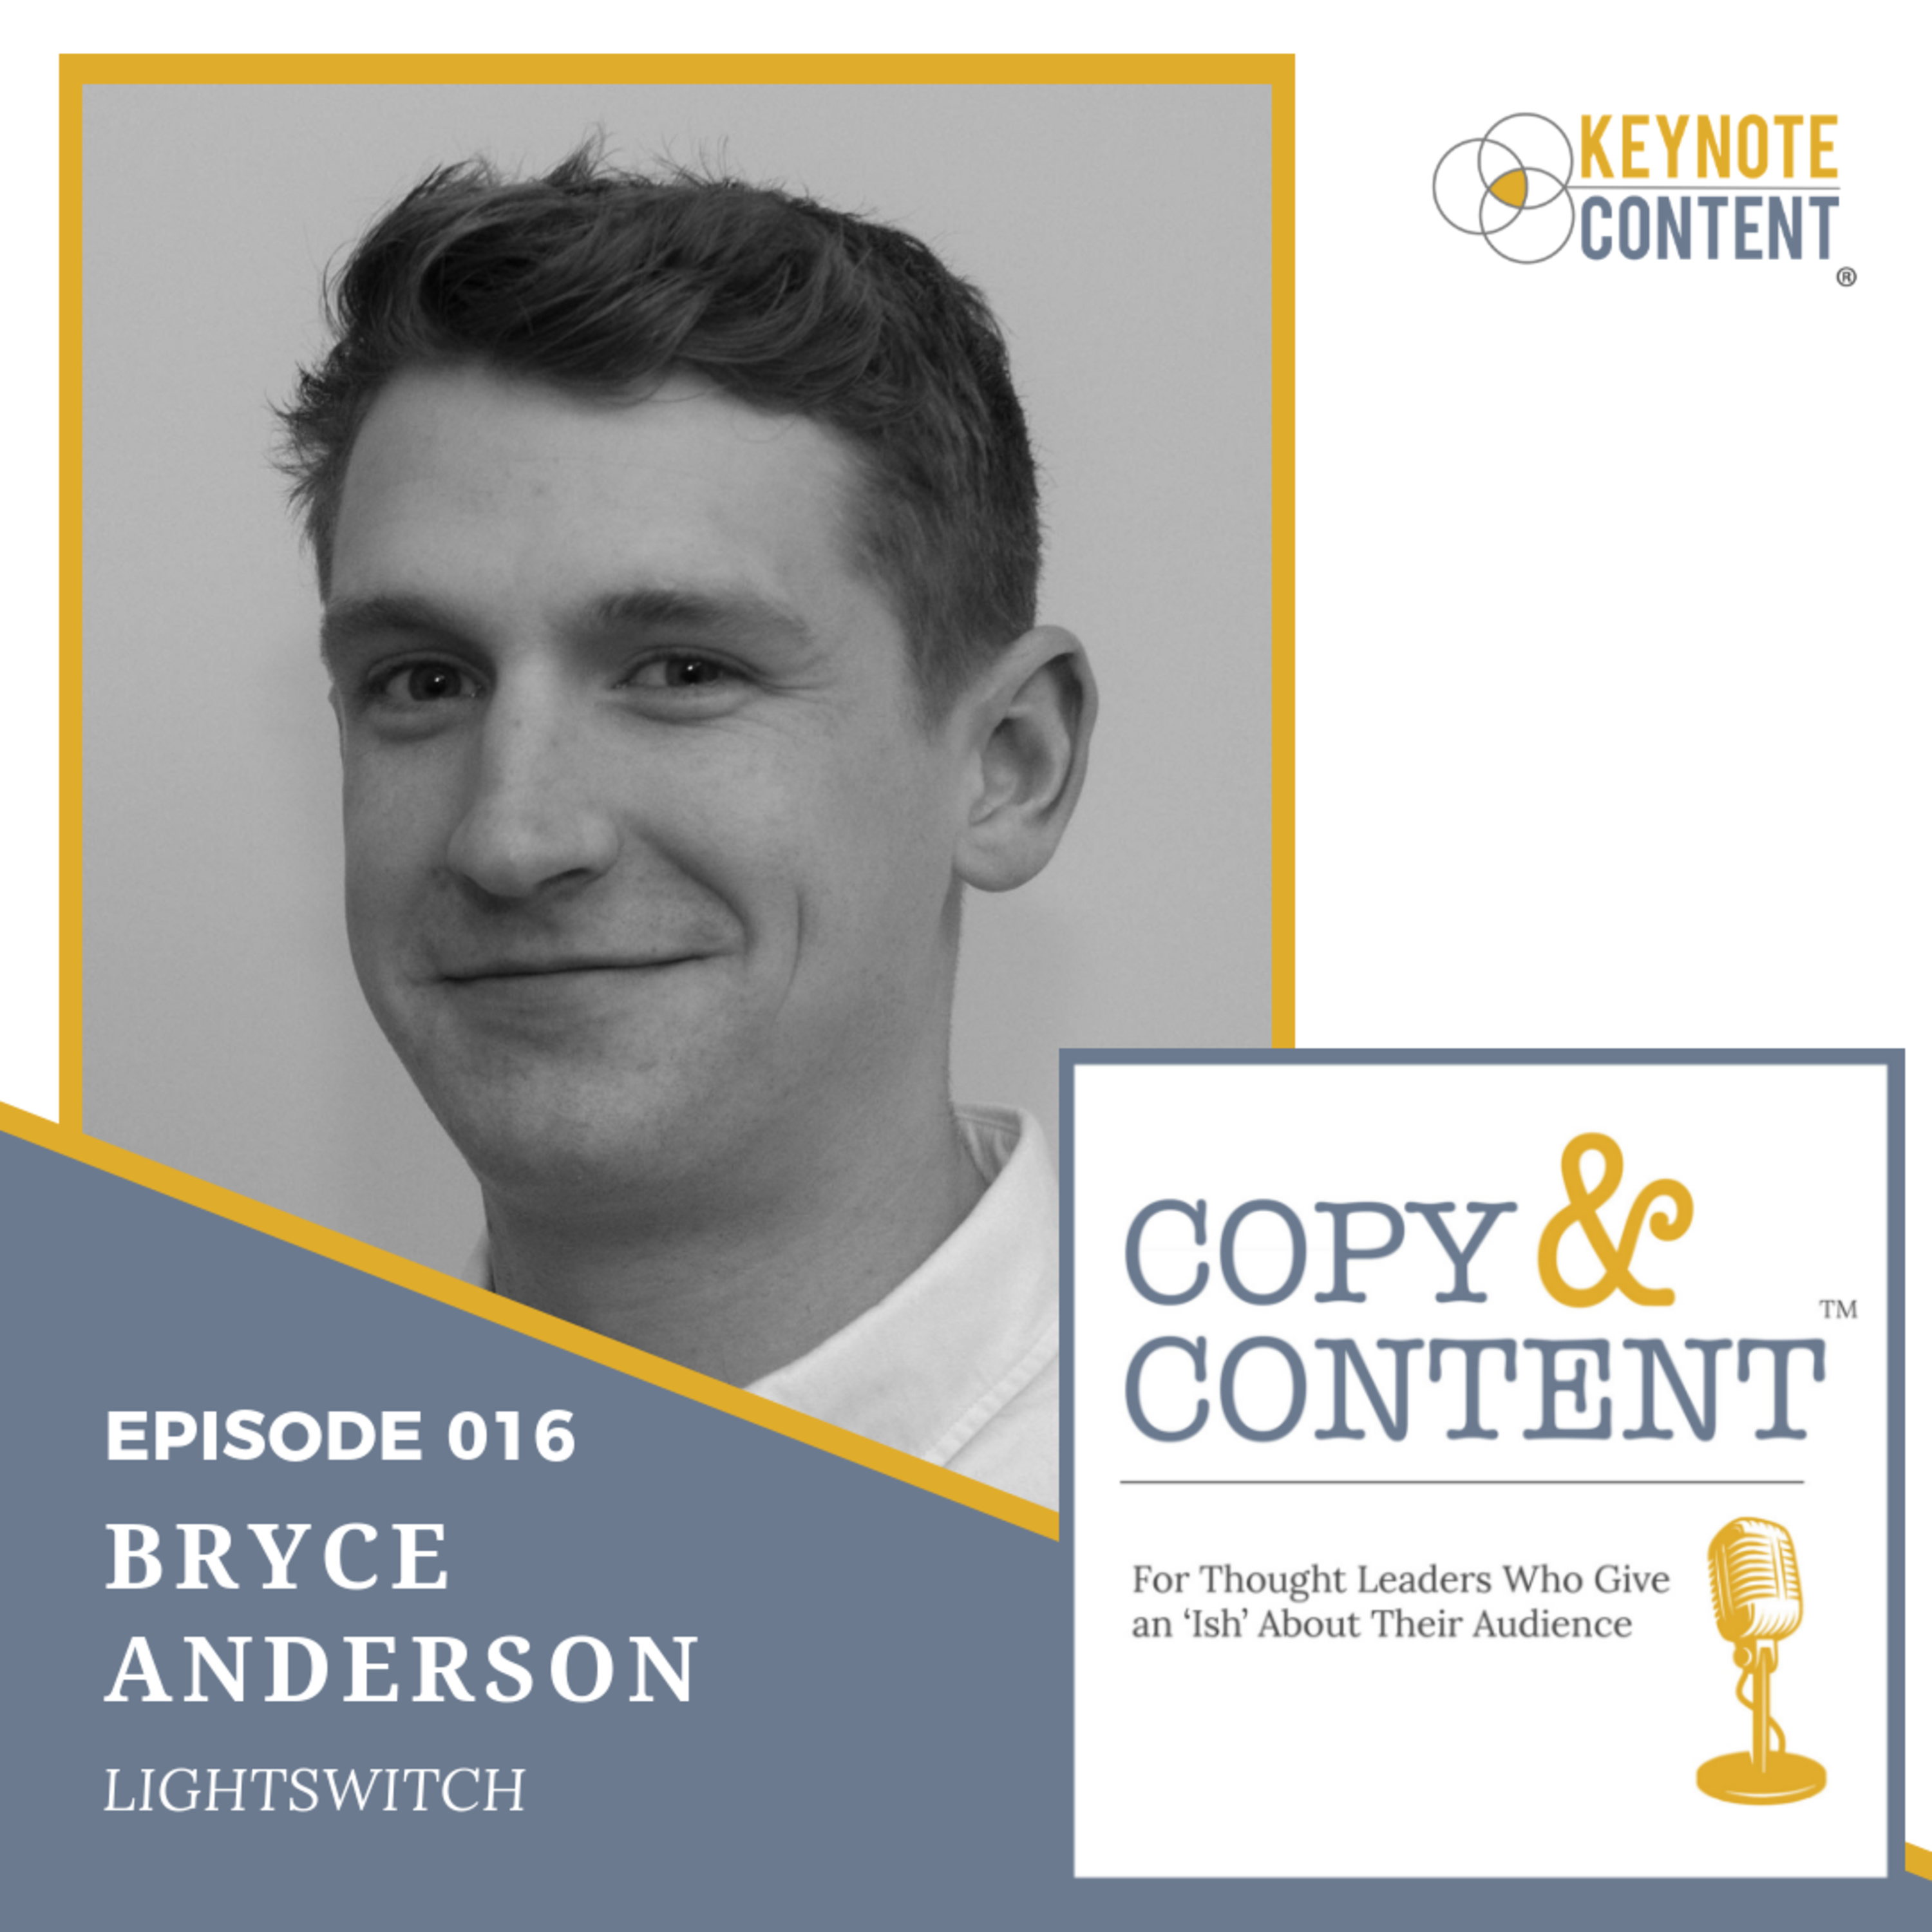 The Copy & Content Podcast with Jon Cook - 016 // Bryce Anderson, Lightswitch Video